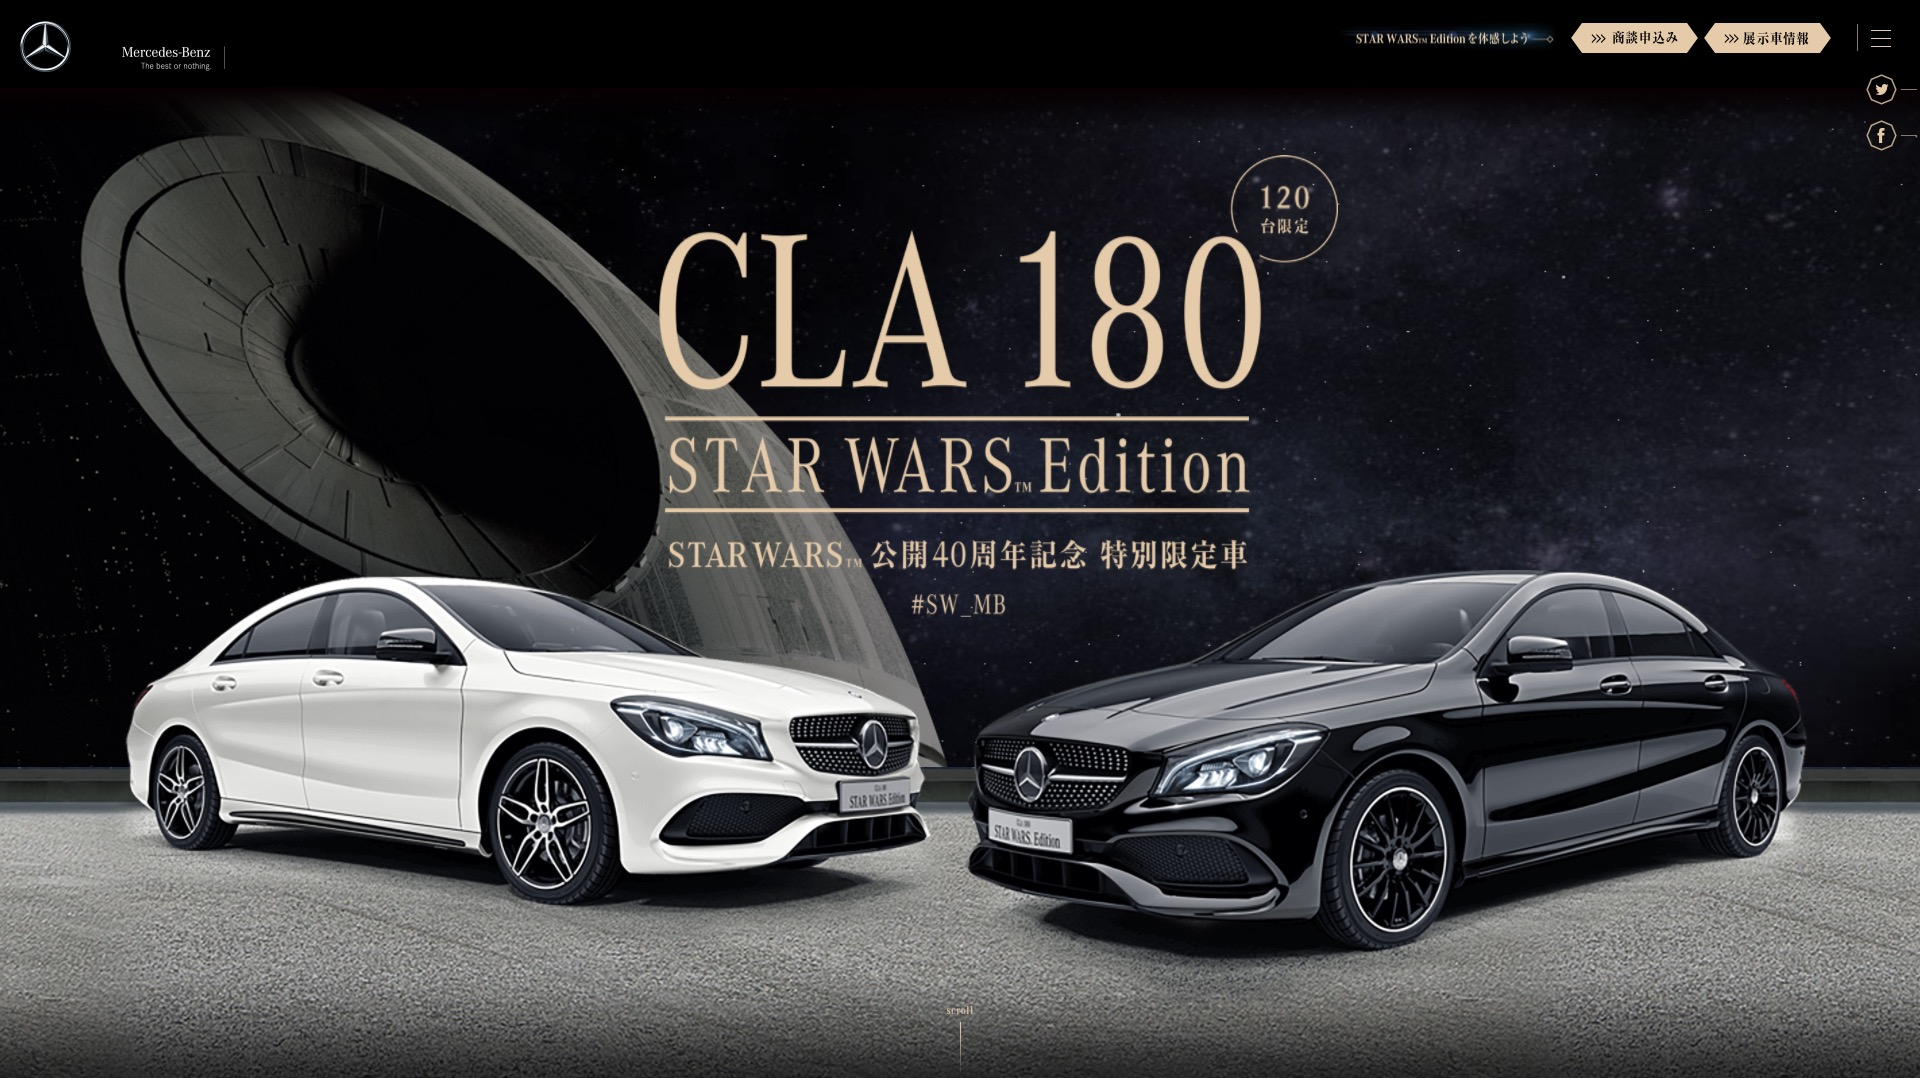 Mercedes benz cla gets star wars themed special edition in for Mercedes benz japan